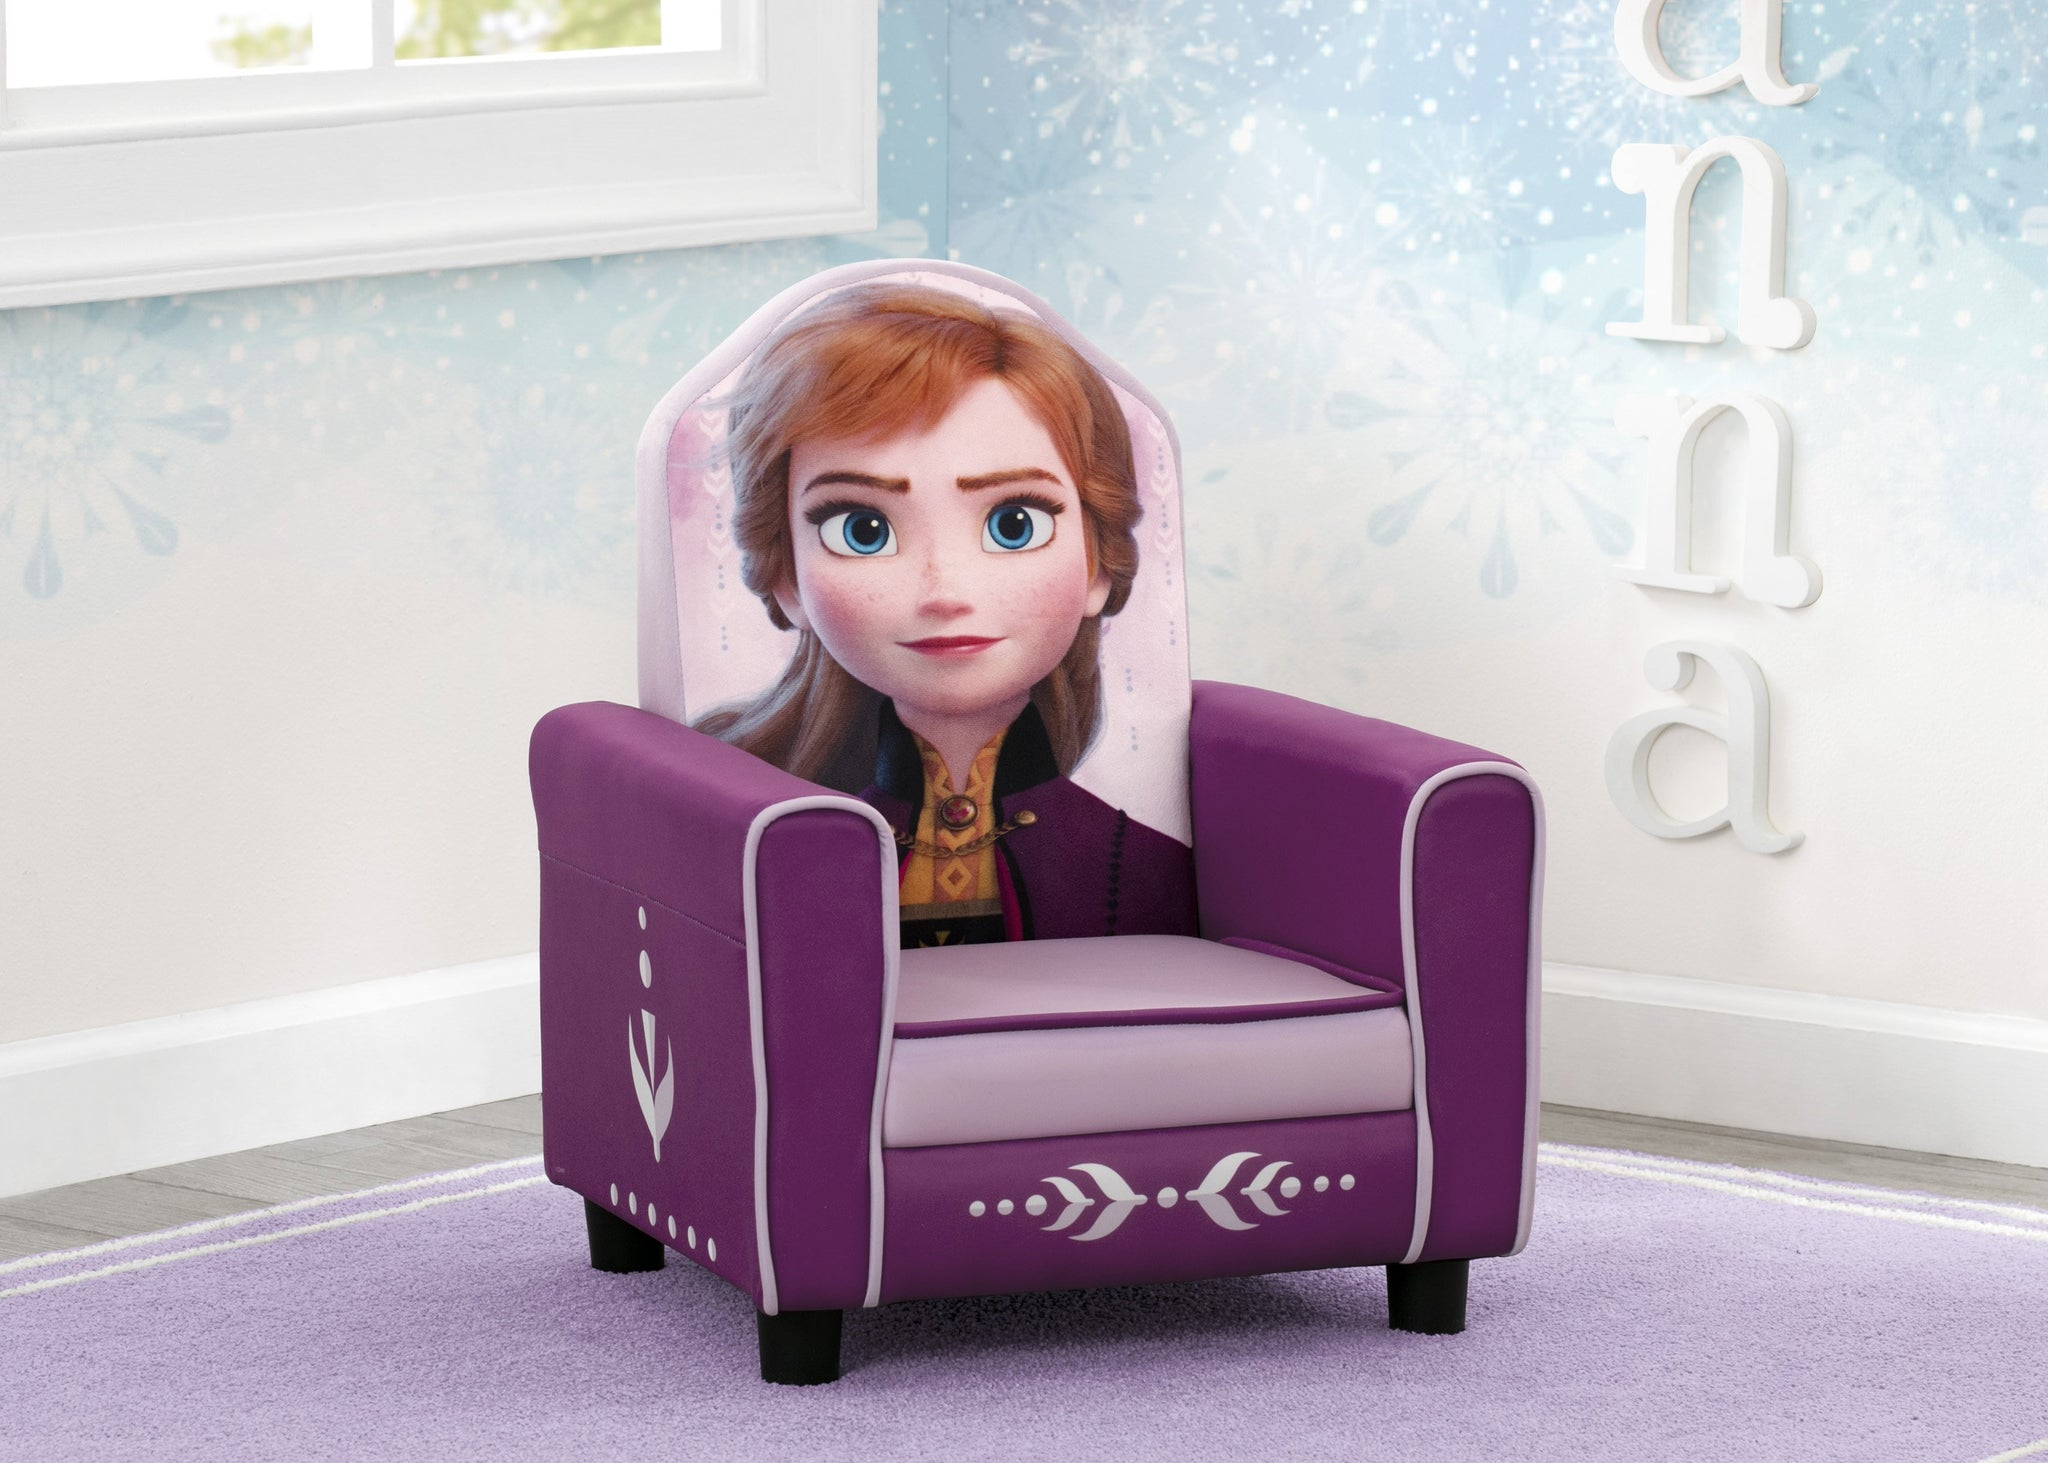 Delta Children Frozen II (1091) Anna Figural Upholstered Kids Chair, Hangtag View Frozen (1091)